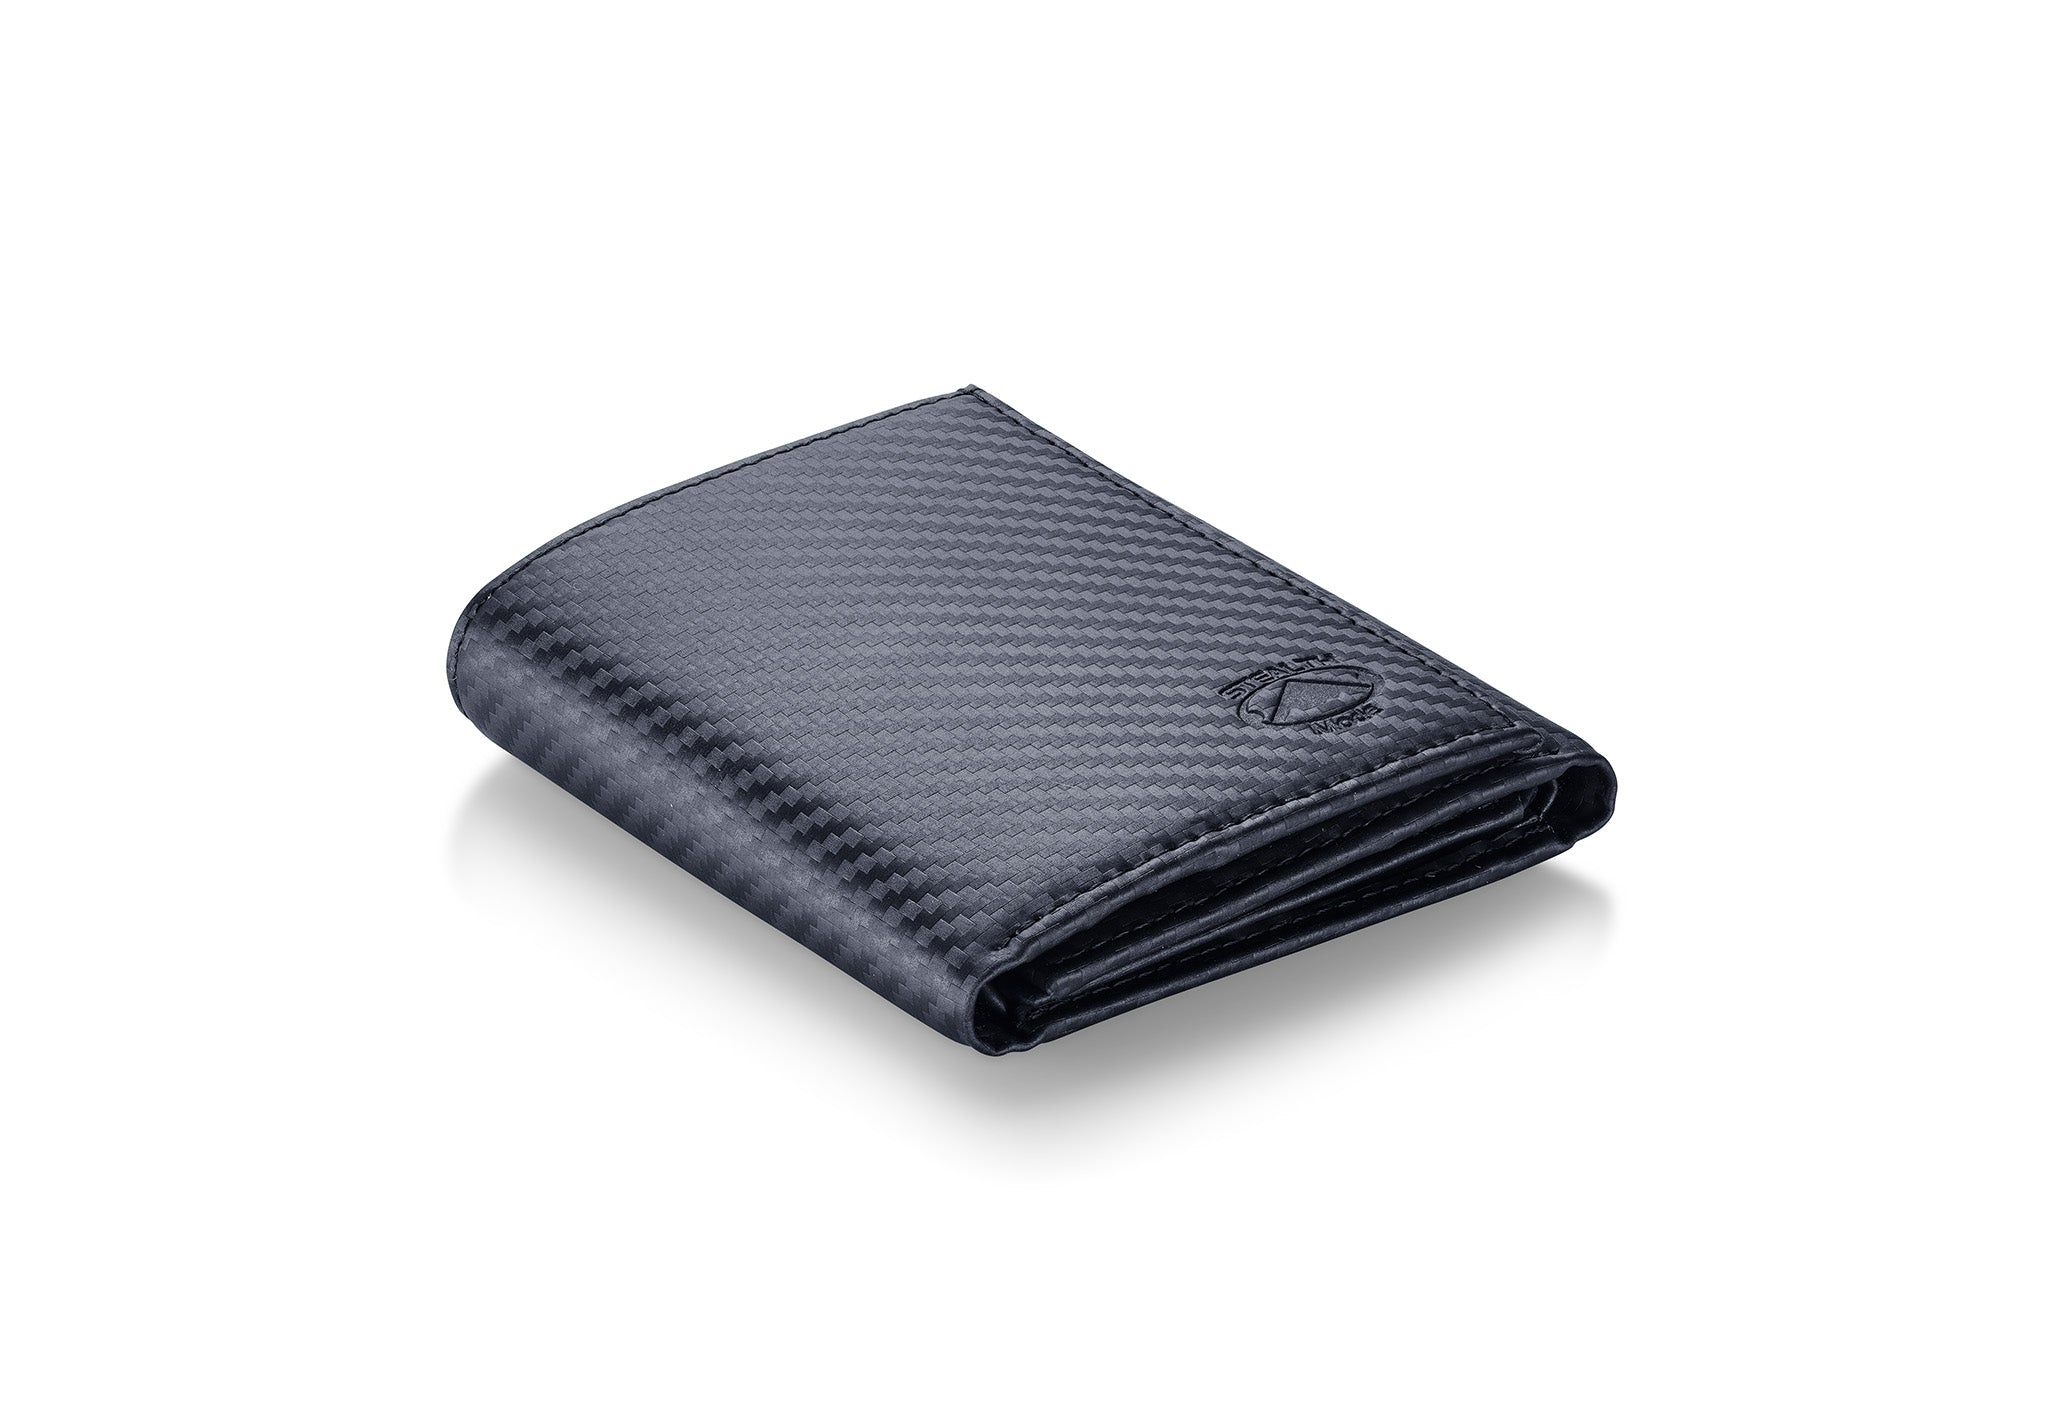 Carbon Fiber Trifold RFID Wallet For Men With Flip Out ID Holder